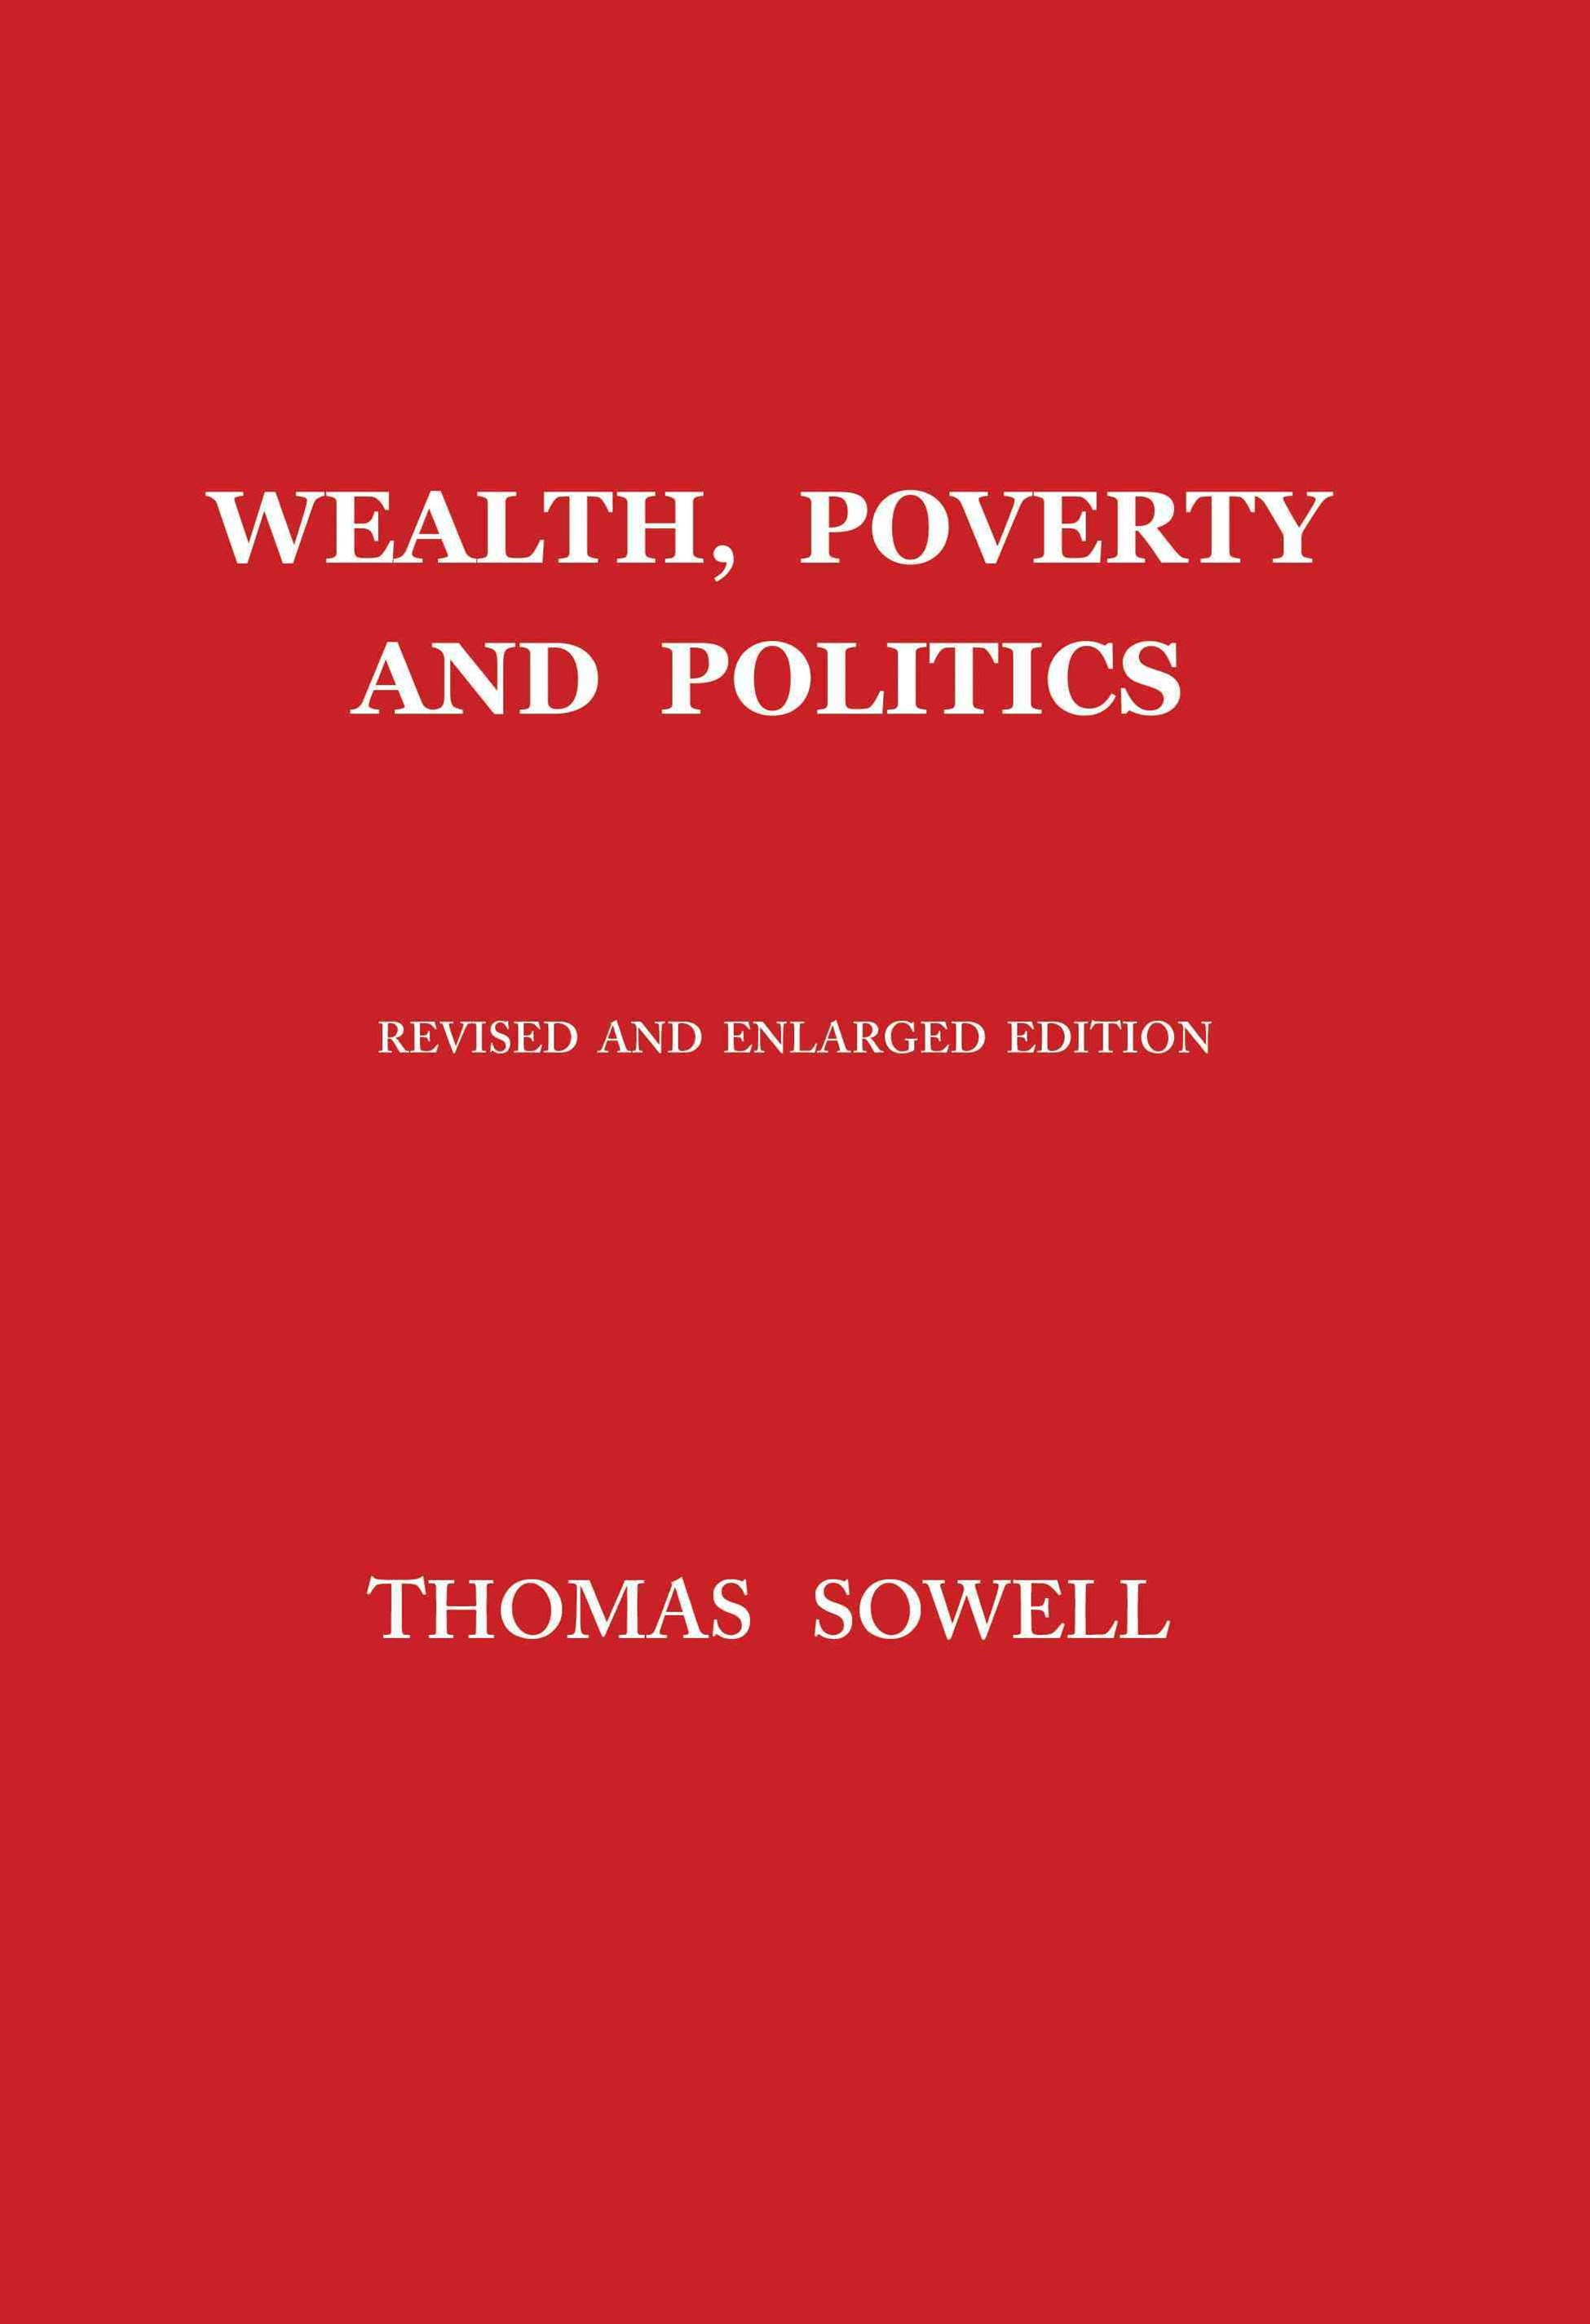 Wealth, Poverty and Politics